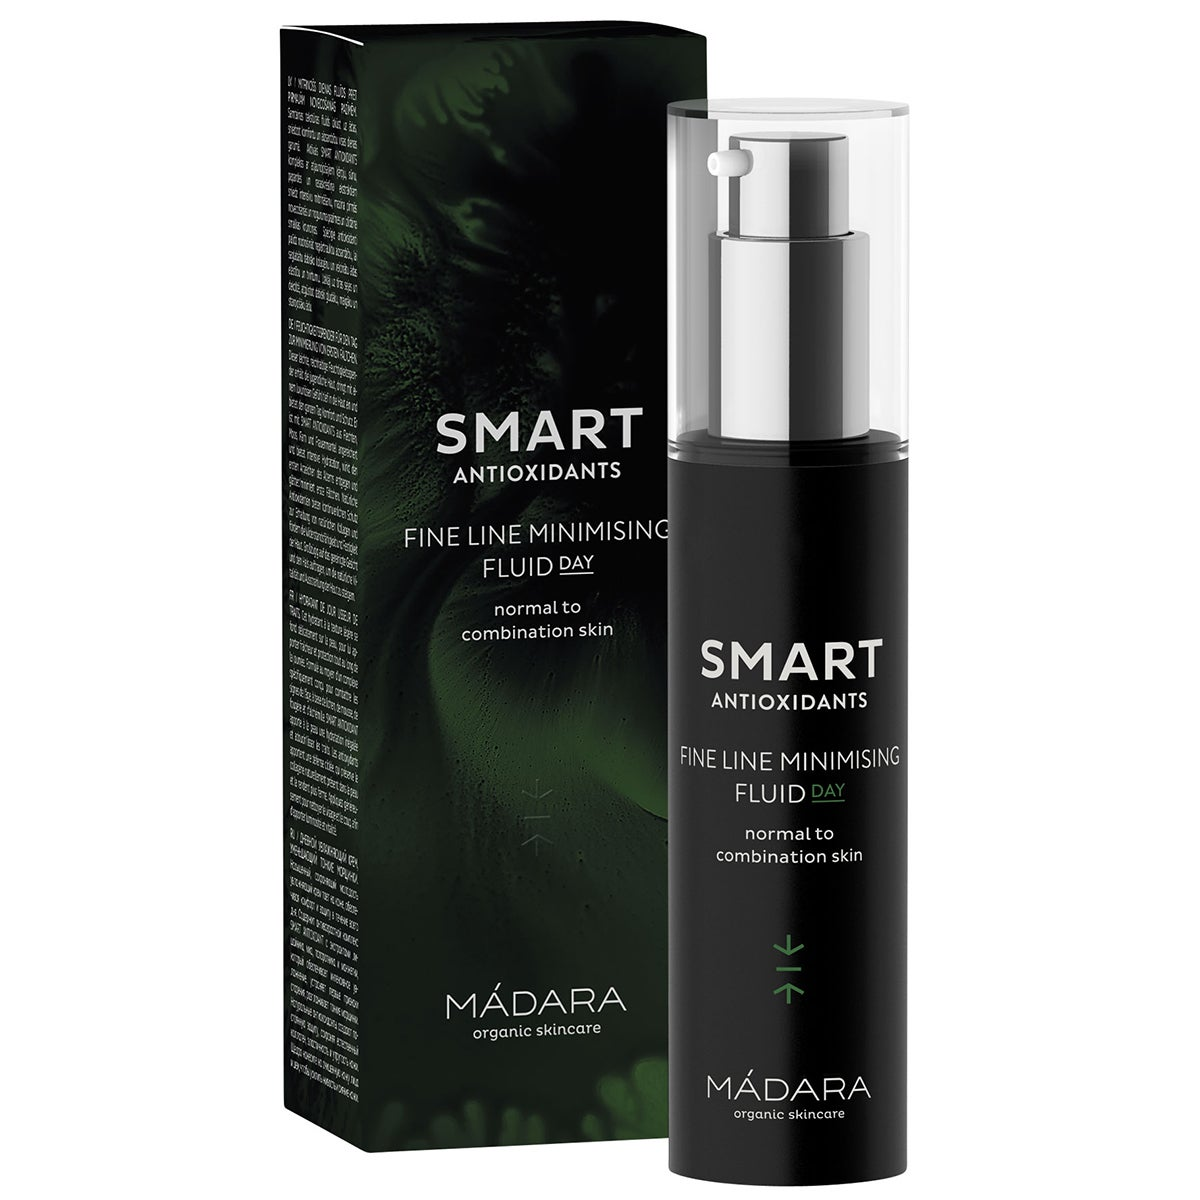 MÁDARA ecocosmetics Smart Antioxidants Fine Line Minimizing Fluid Day